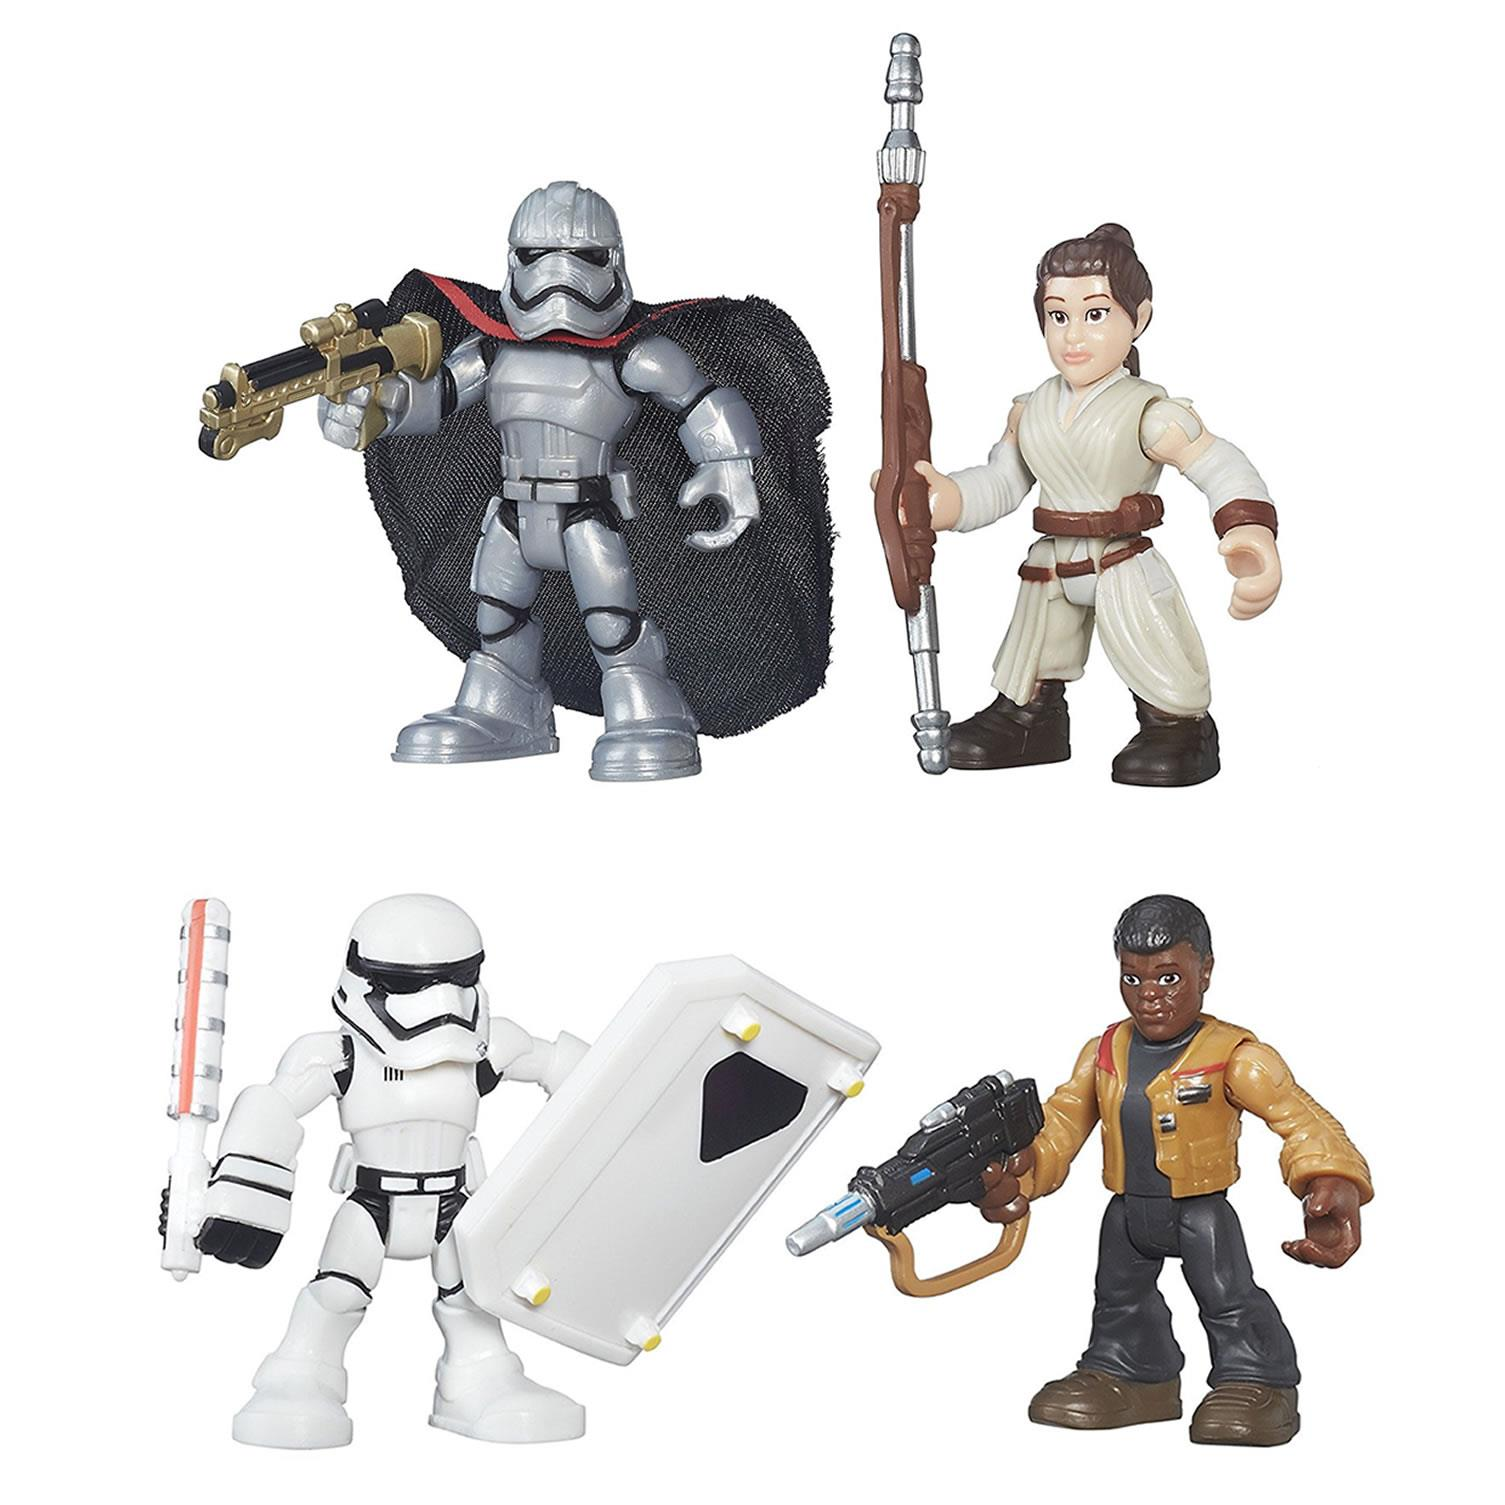 Playskool Galactic Heroes Star Wars 4-Figure Variety 2PK Set Hasbro by Hasbro